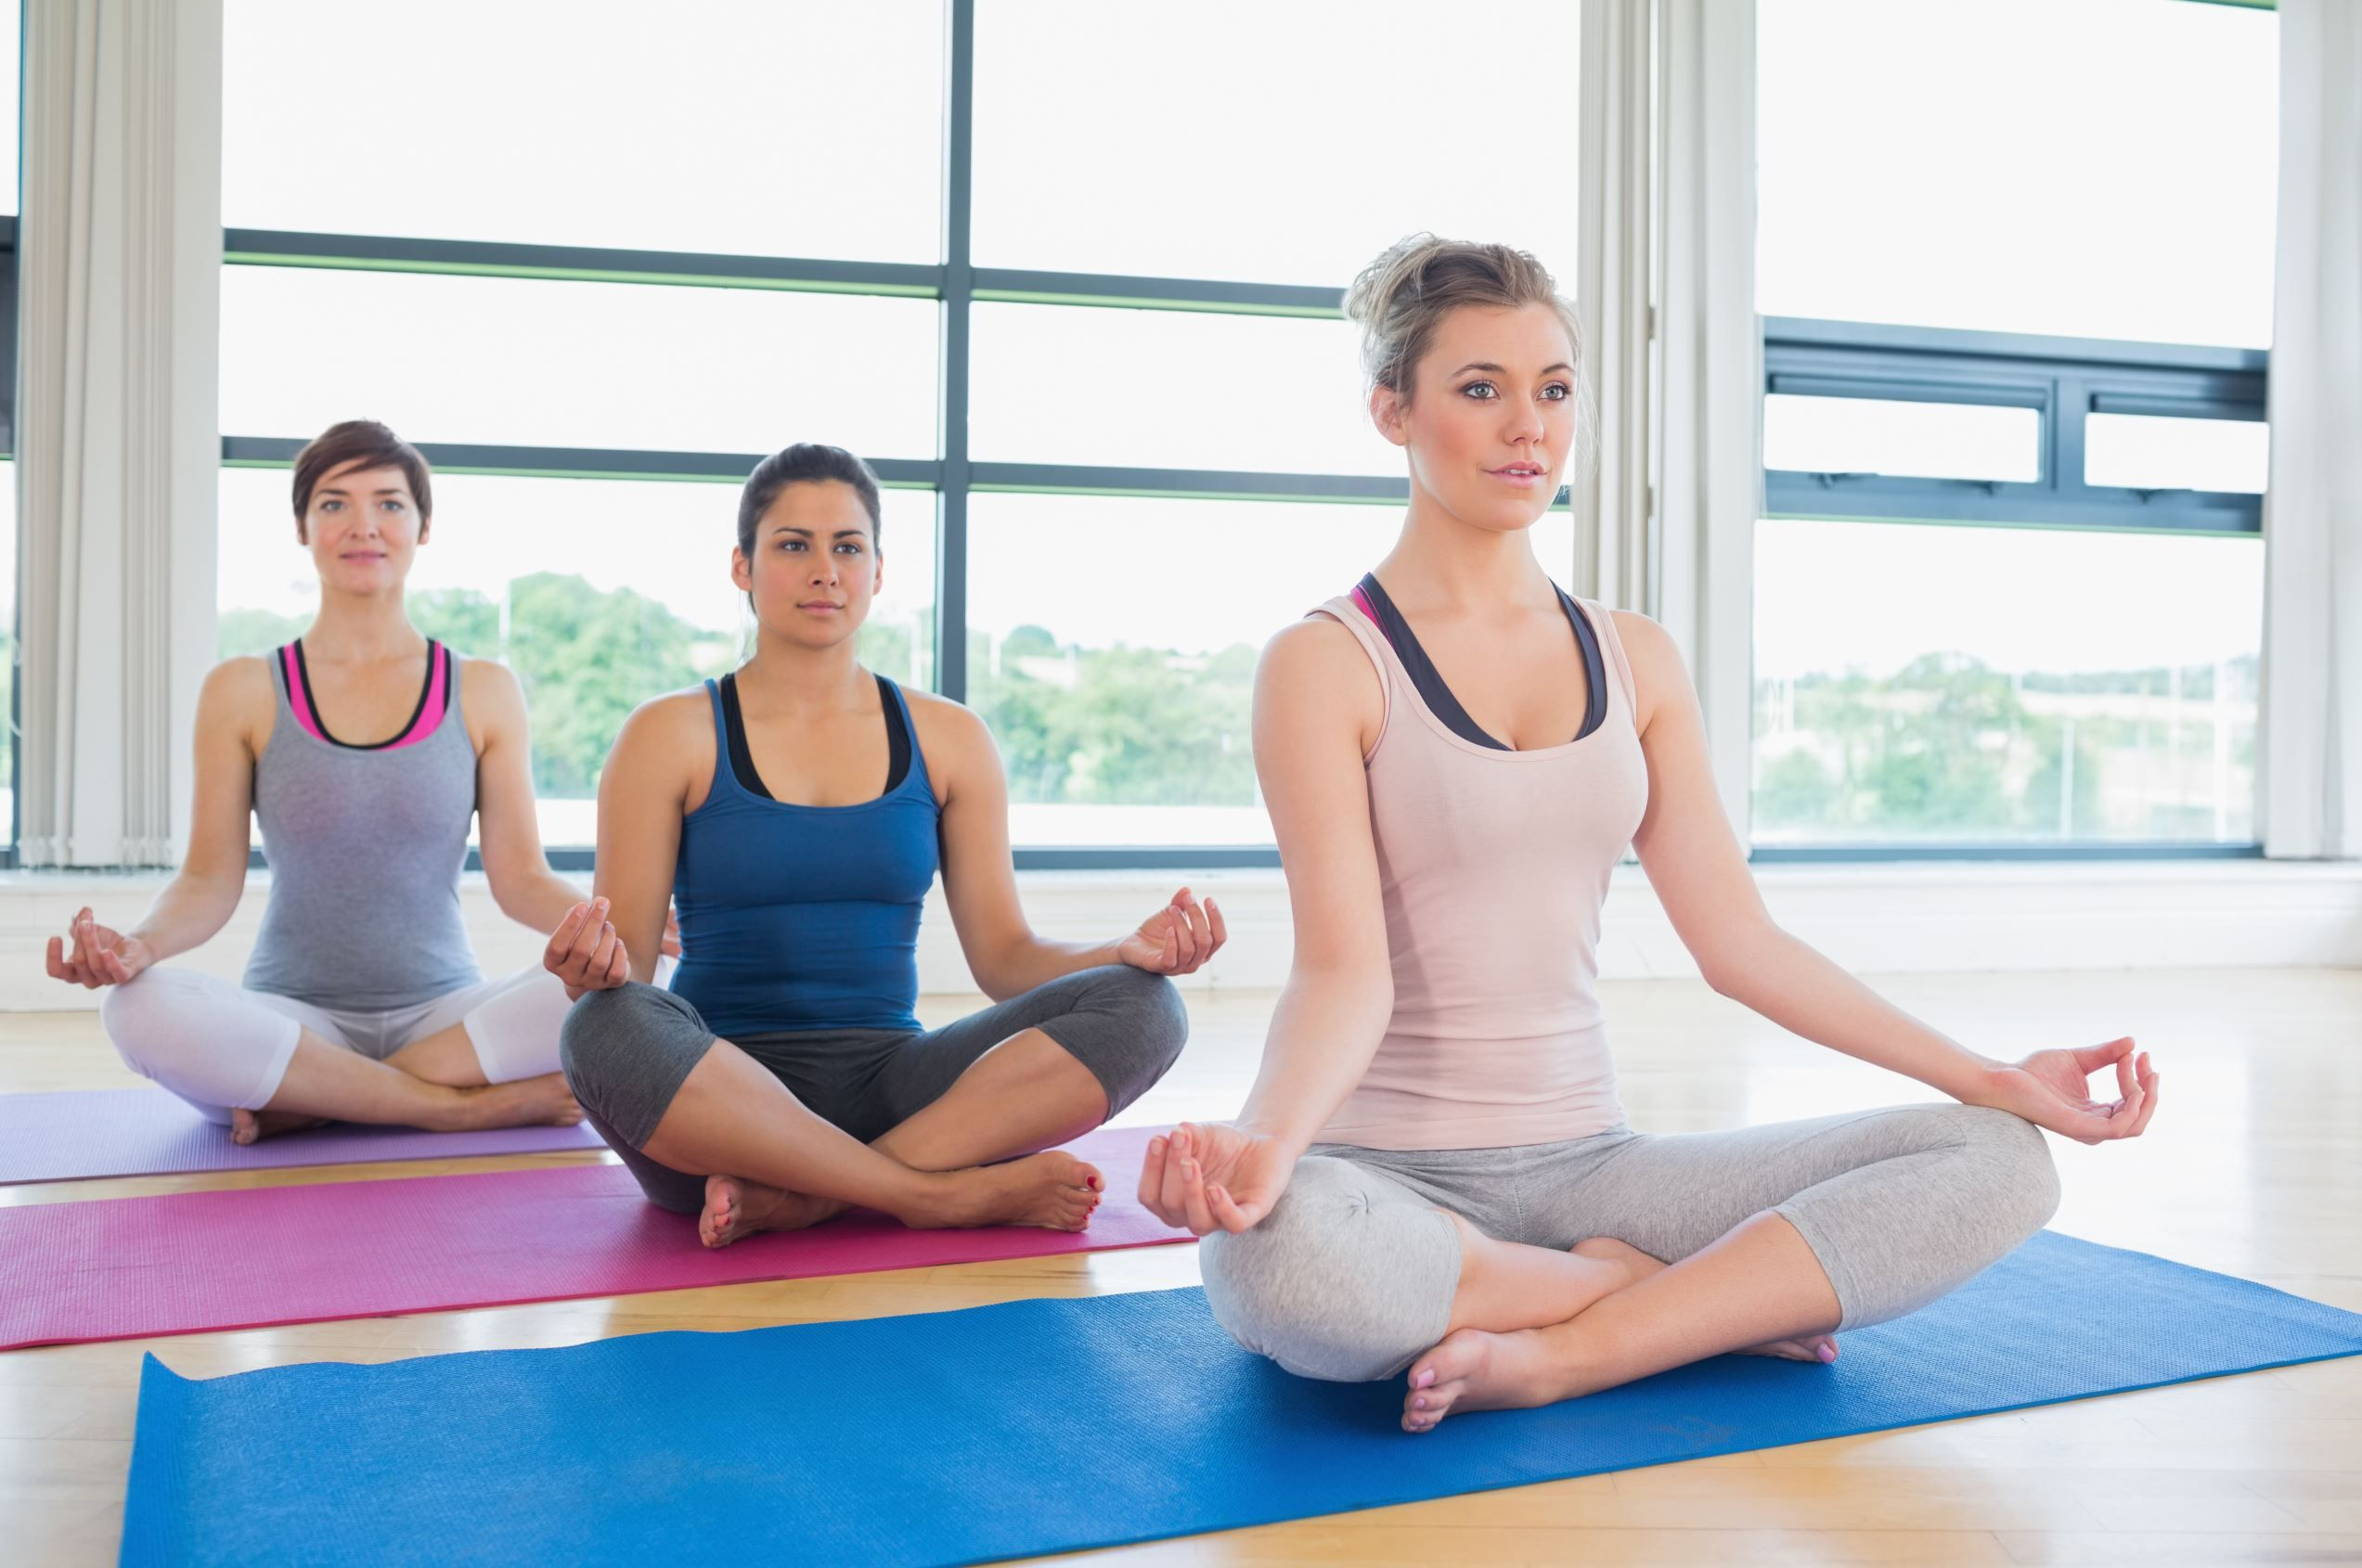 23 fascinating facts about yoga